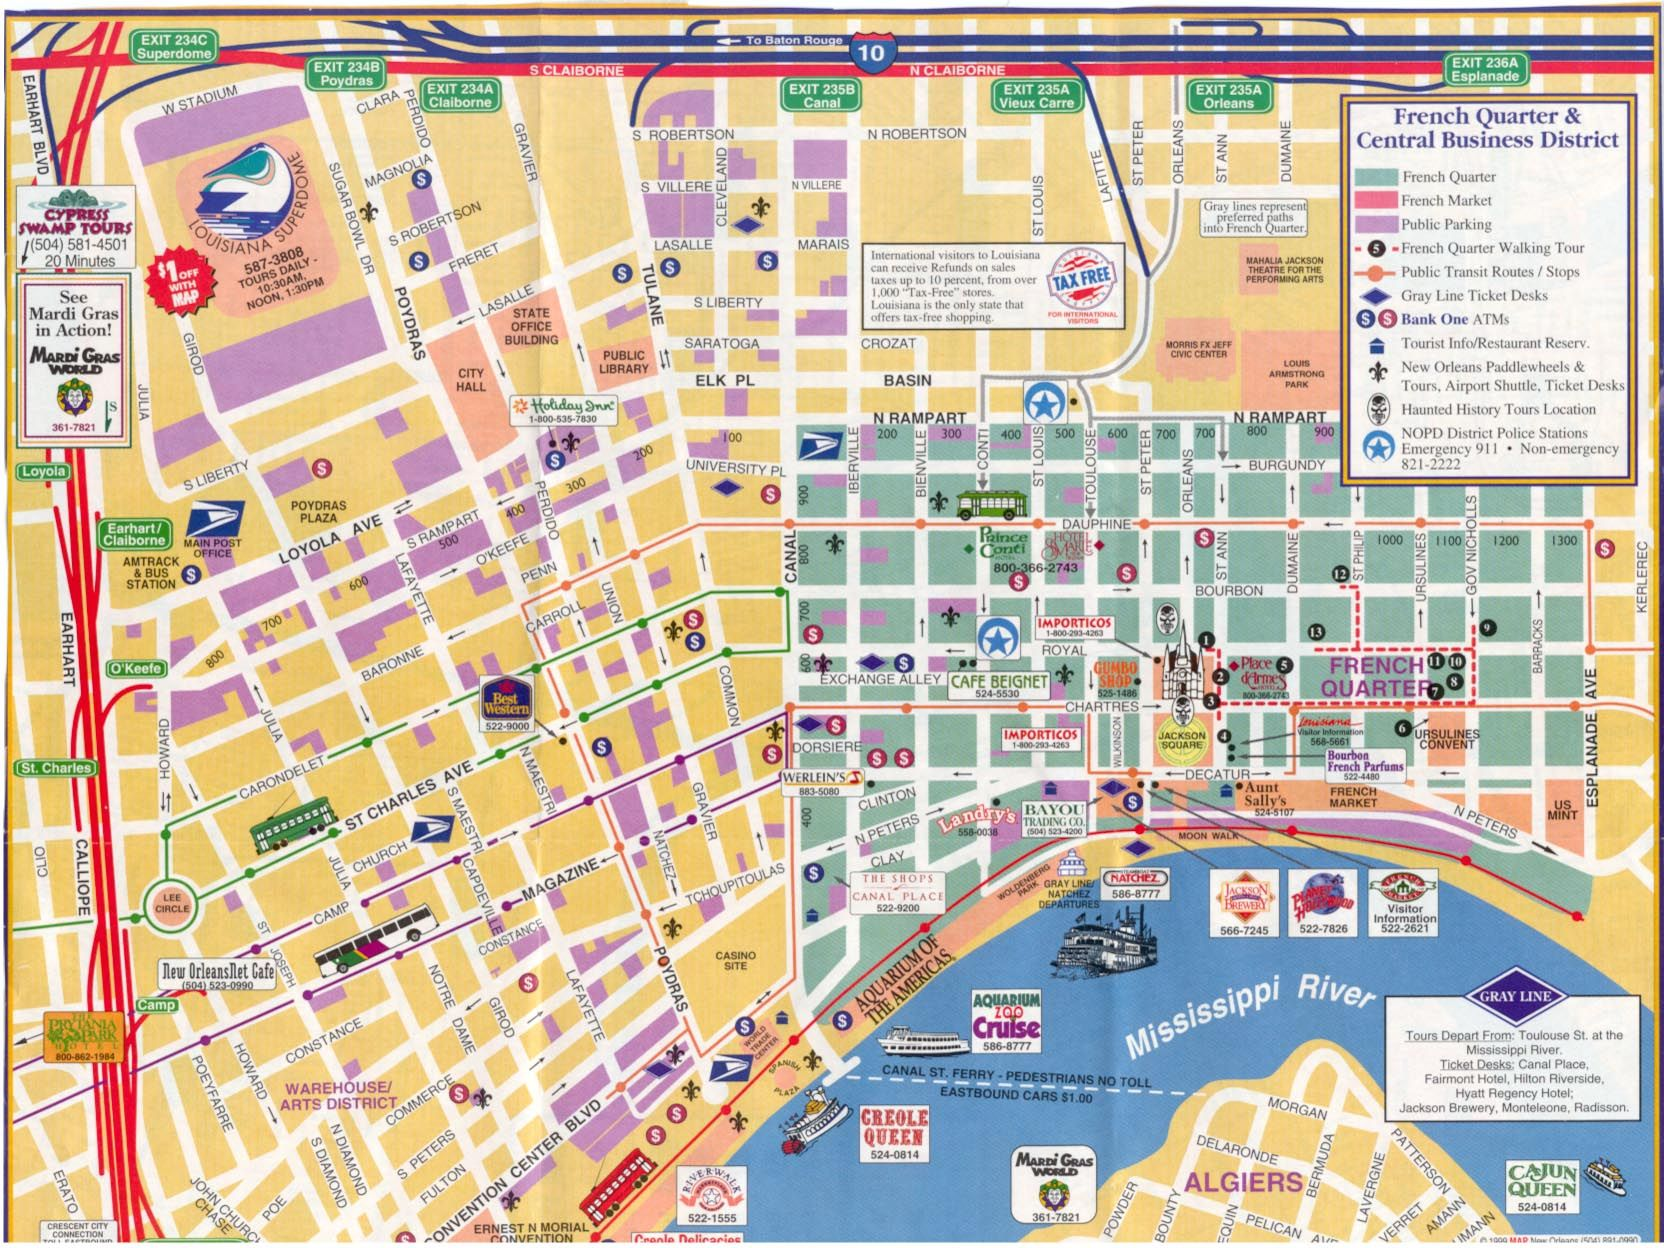 New Orleans French Quarter Tourist Map Pin by Marguerite Thompson on Travel tips and maps in 2019